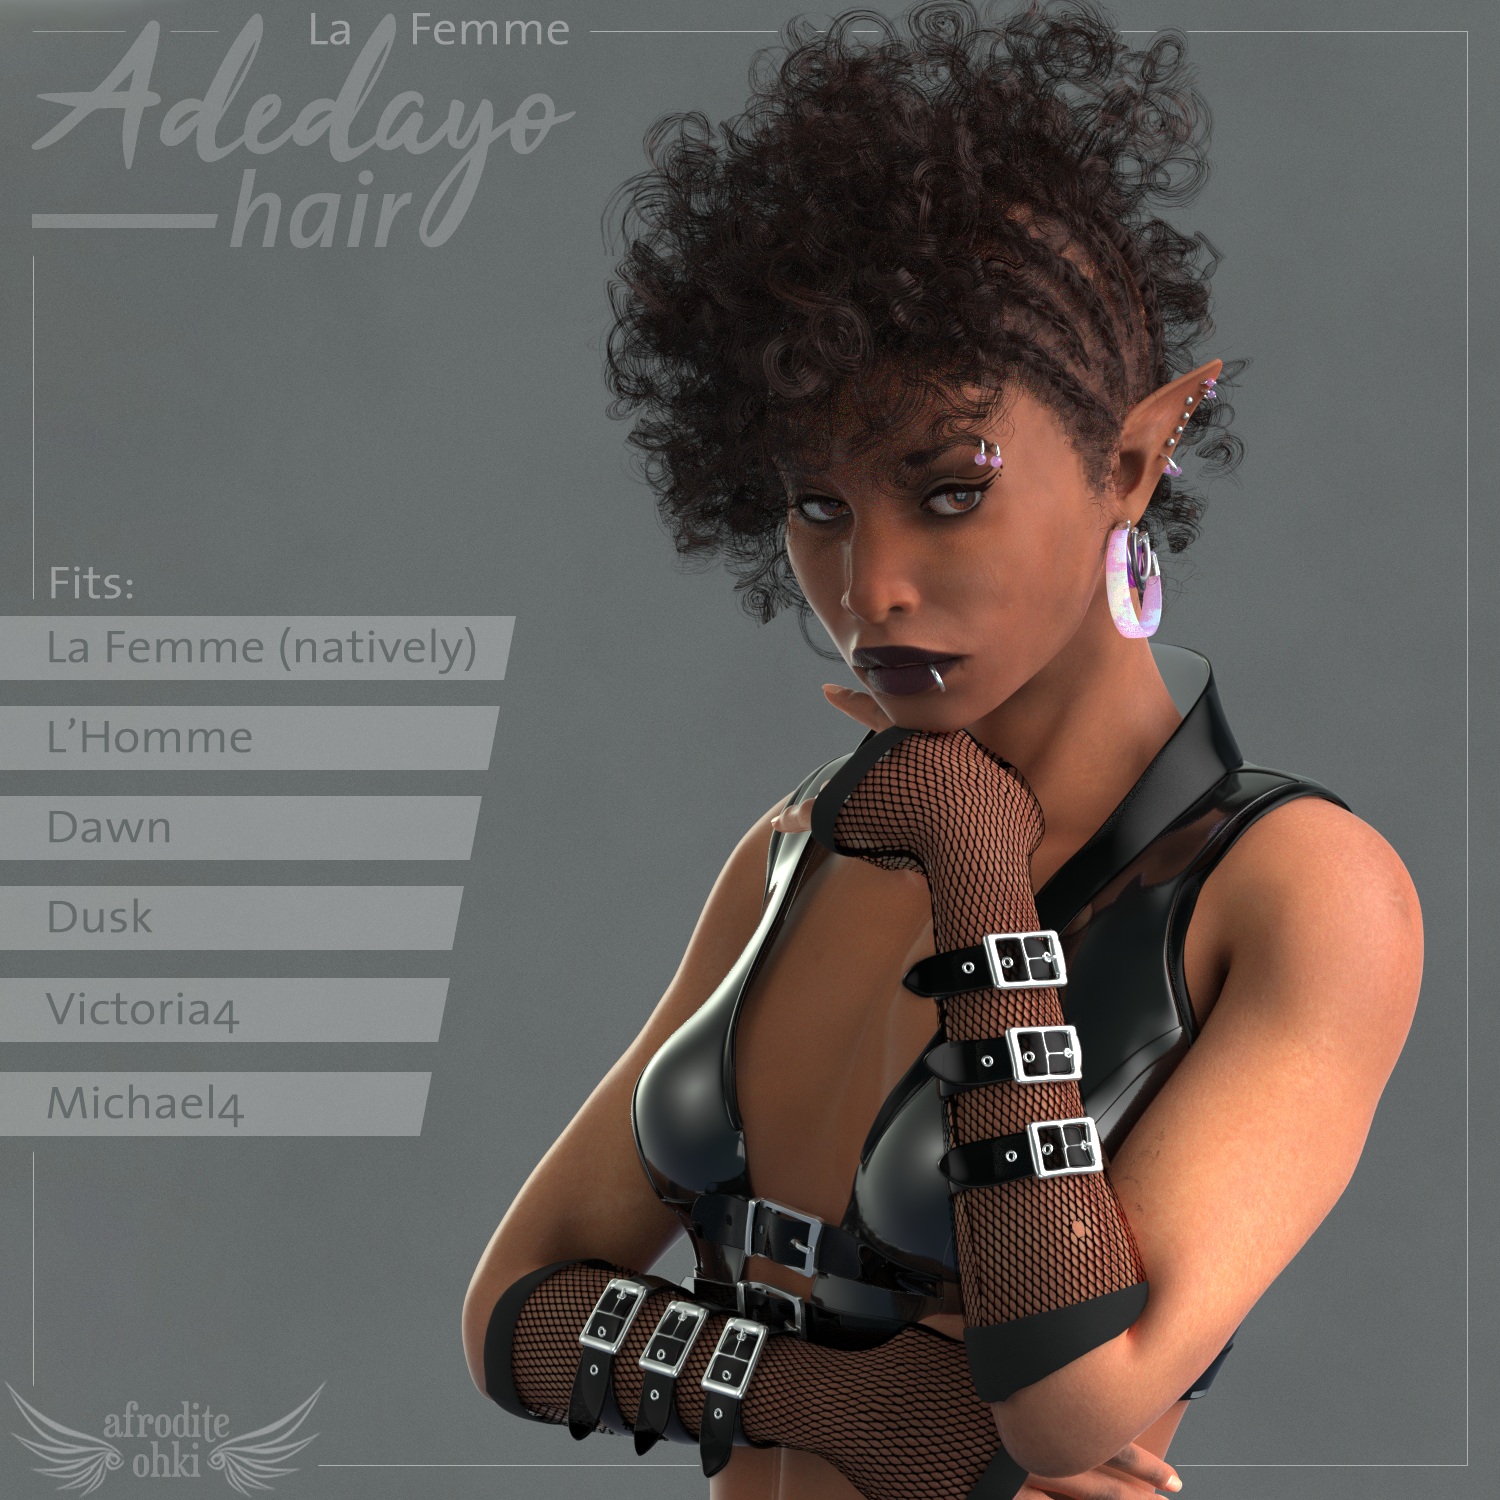 Adedayo Hair for La Femme and more by Afrodite-Ohki